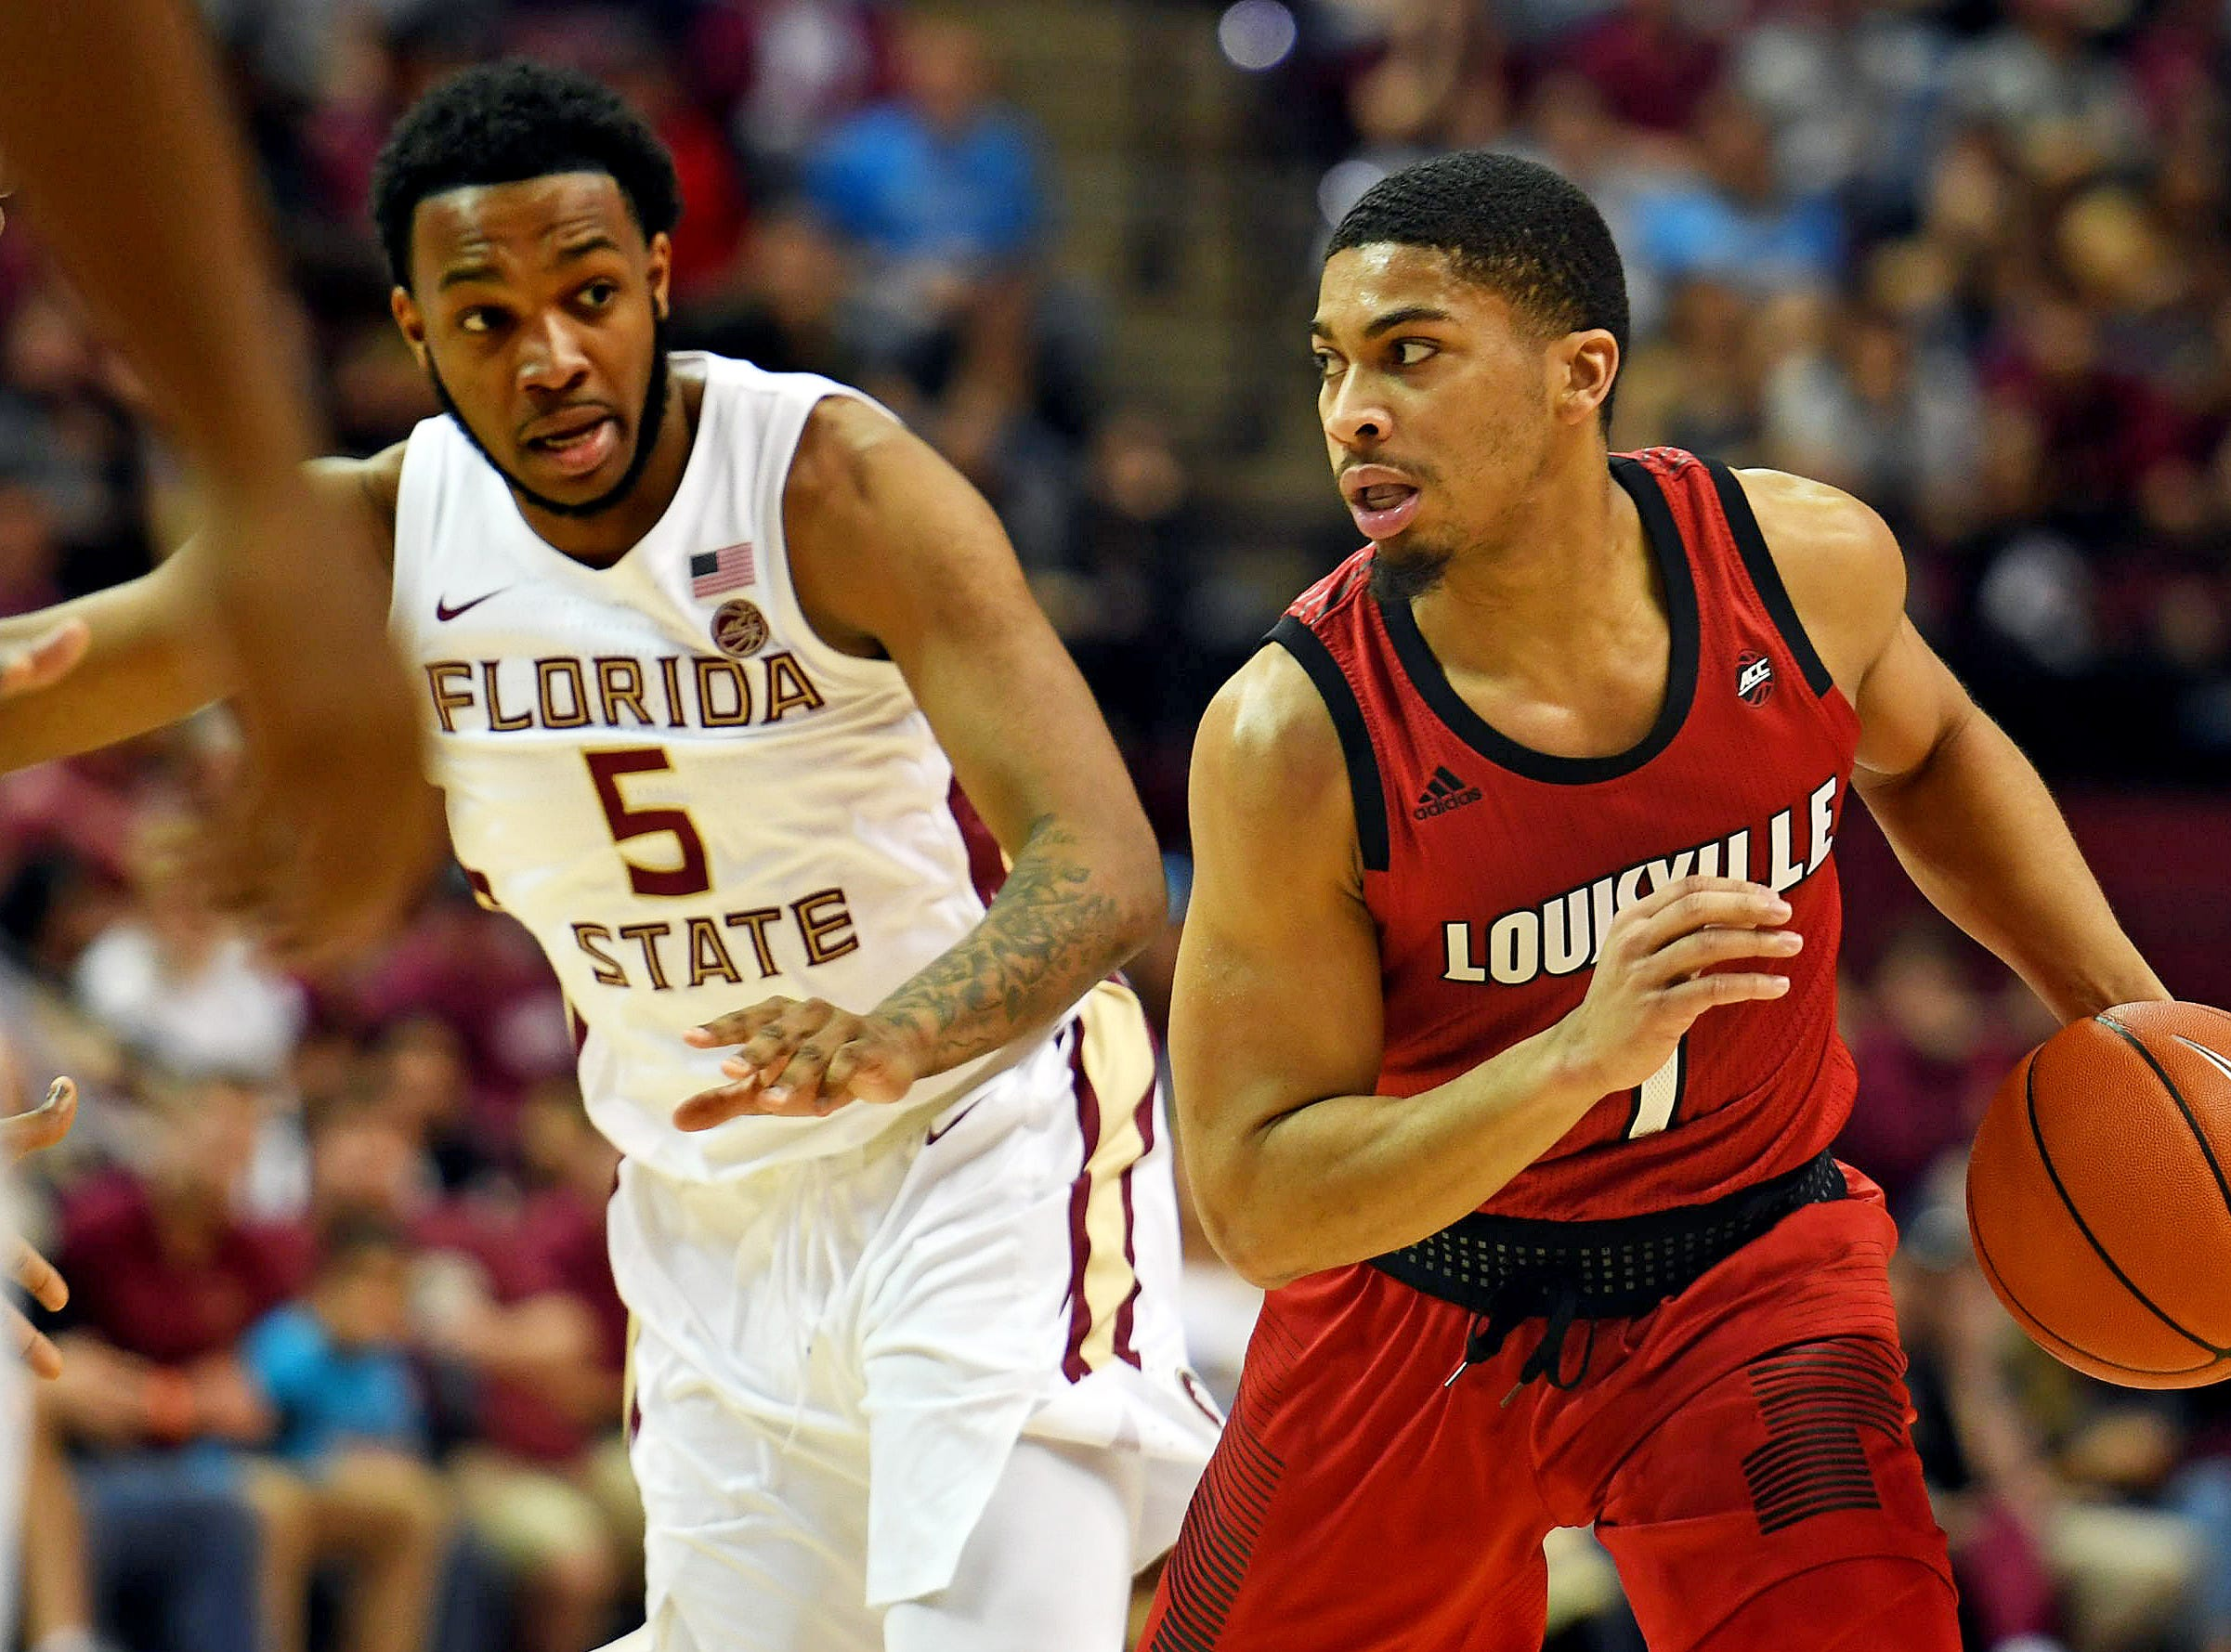 Feb 9, 2019; Tallahassee, FL, USA; Louisville Cardinals guard Christen Cunningham (1) drives the ball against Florida State Seminoles guard PJ Savoy (5) during the first half at Donald L. Tucker Center. Mandatory Credit: Melina Myers-USA TODAY Sports